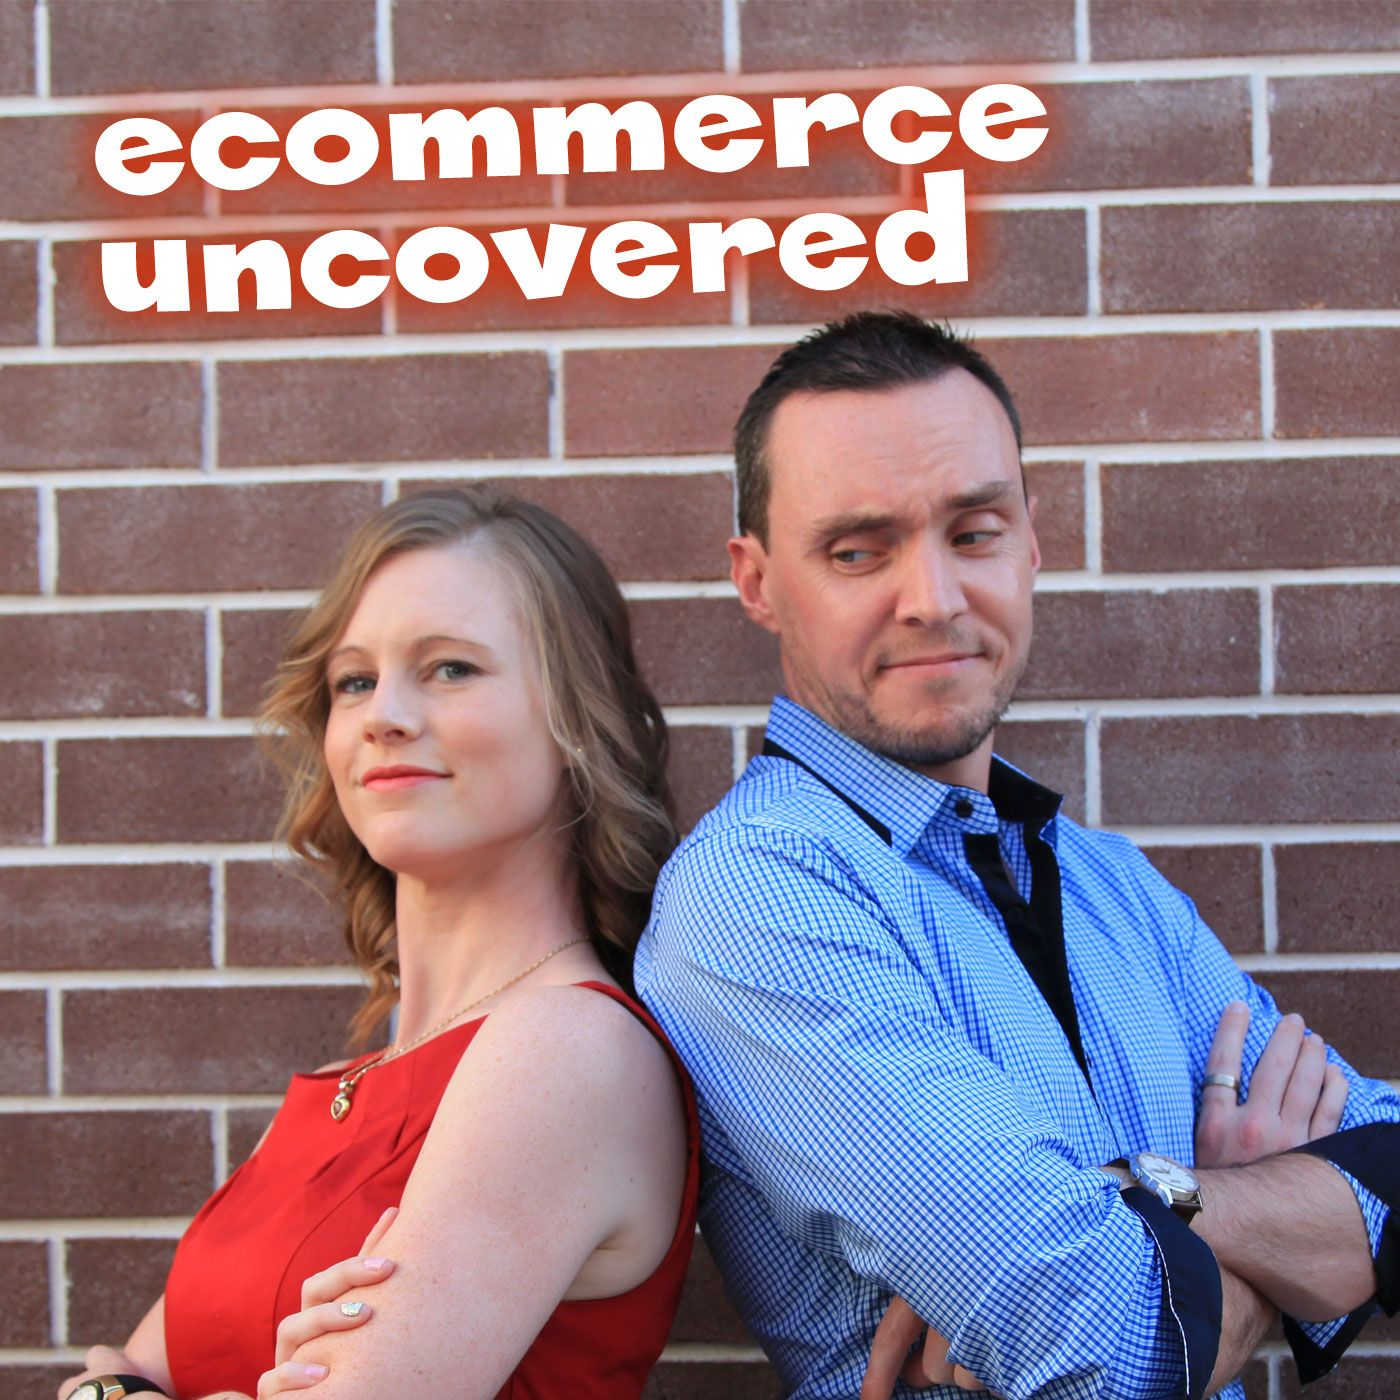 Ecommerce Uncovered